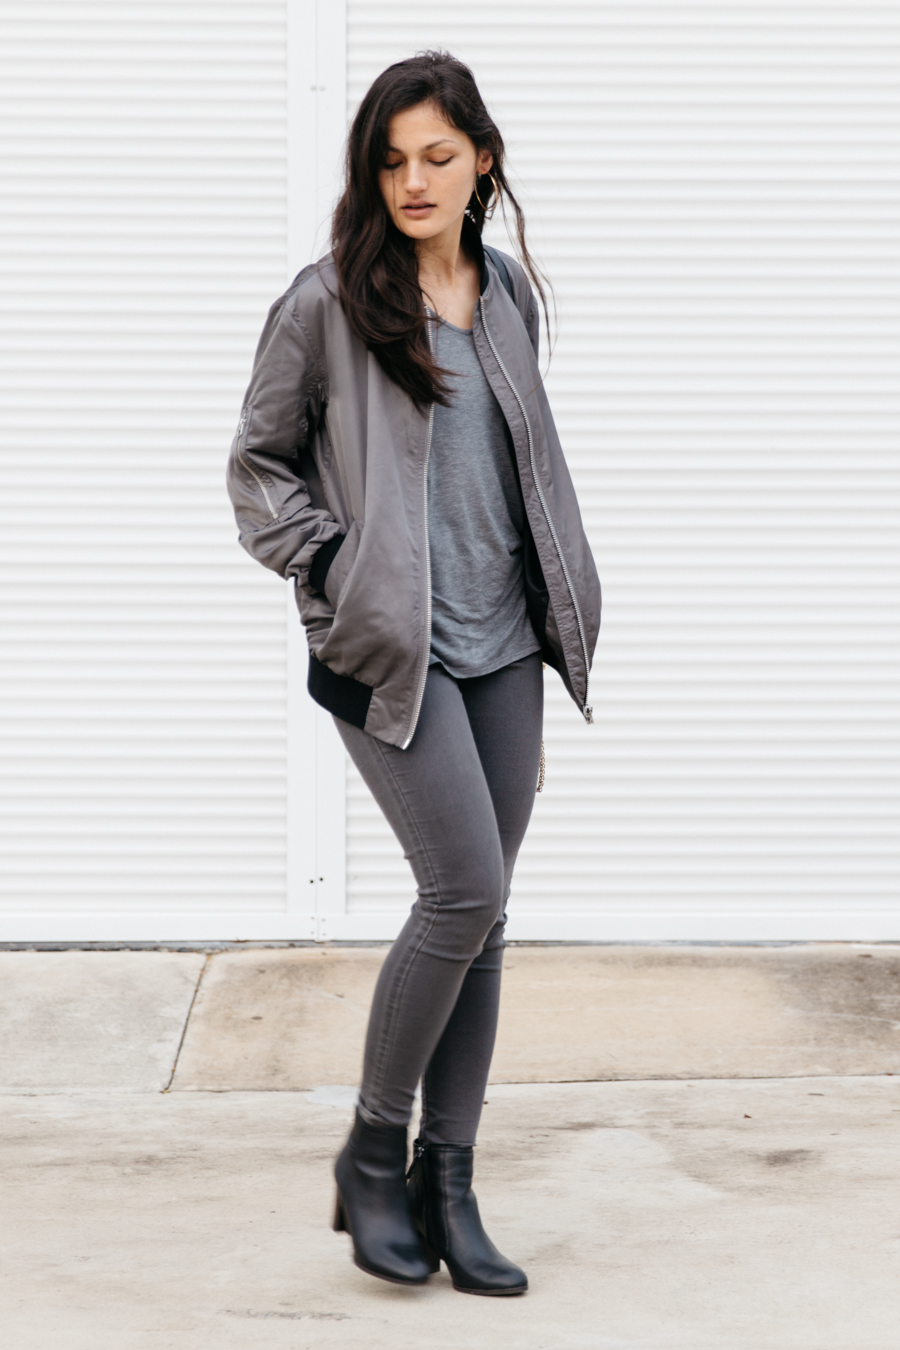 Grey bomber jacket outfit.